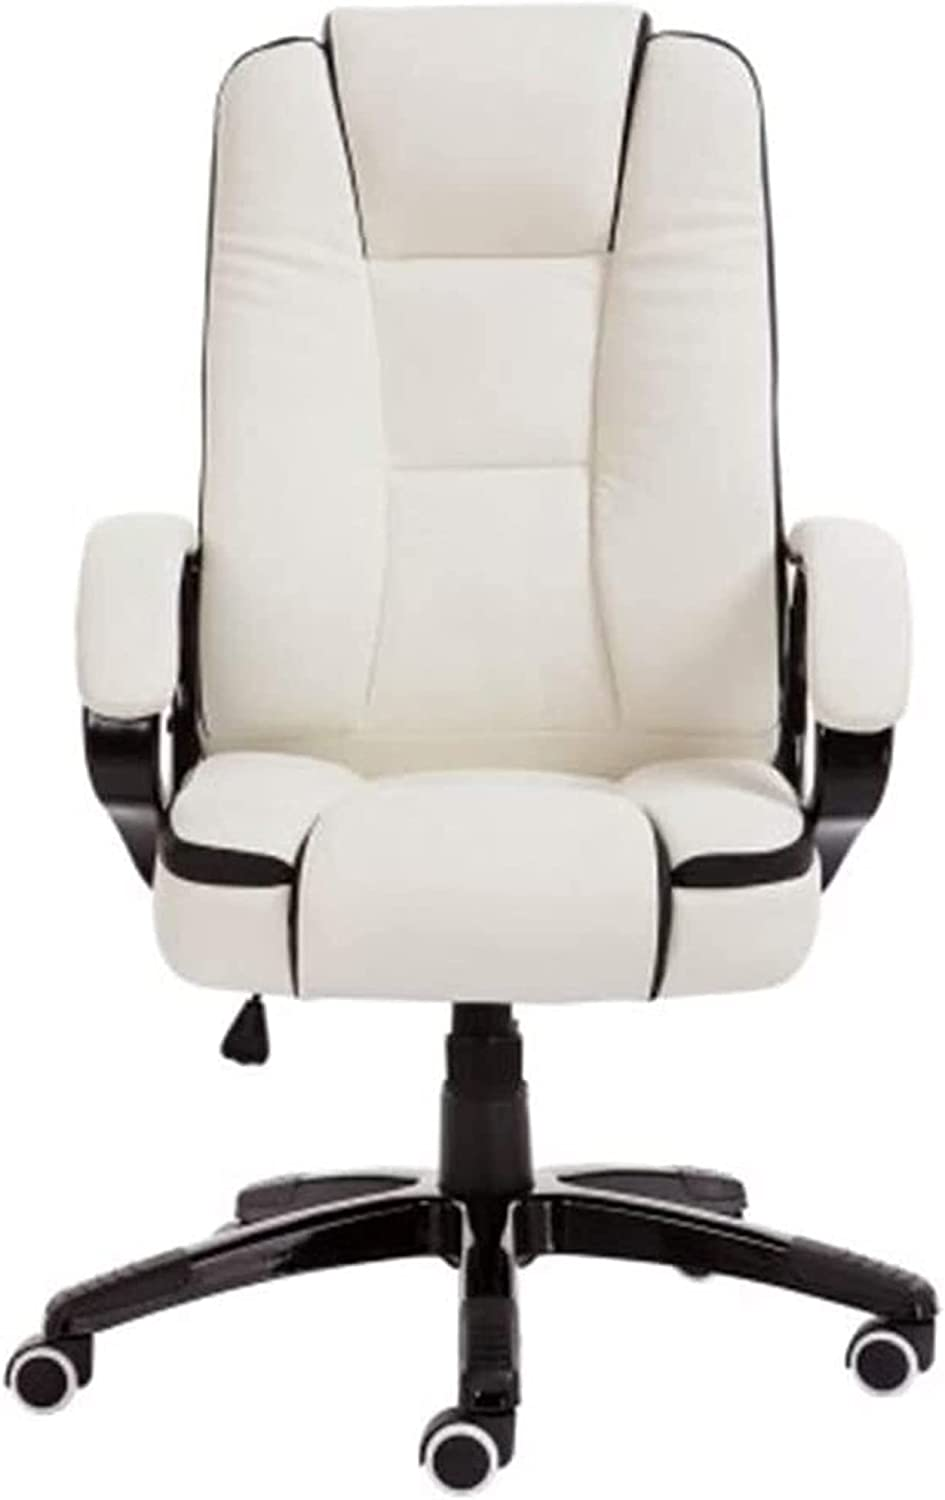 Ranking TOP17 ch-AIR WHLONG Study Chair Office supreme Computer Racing Gam